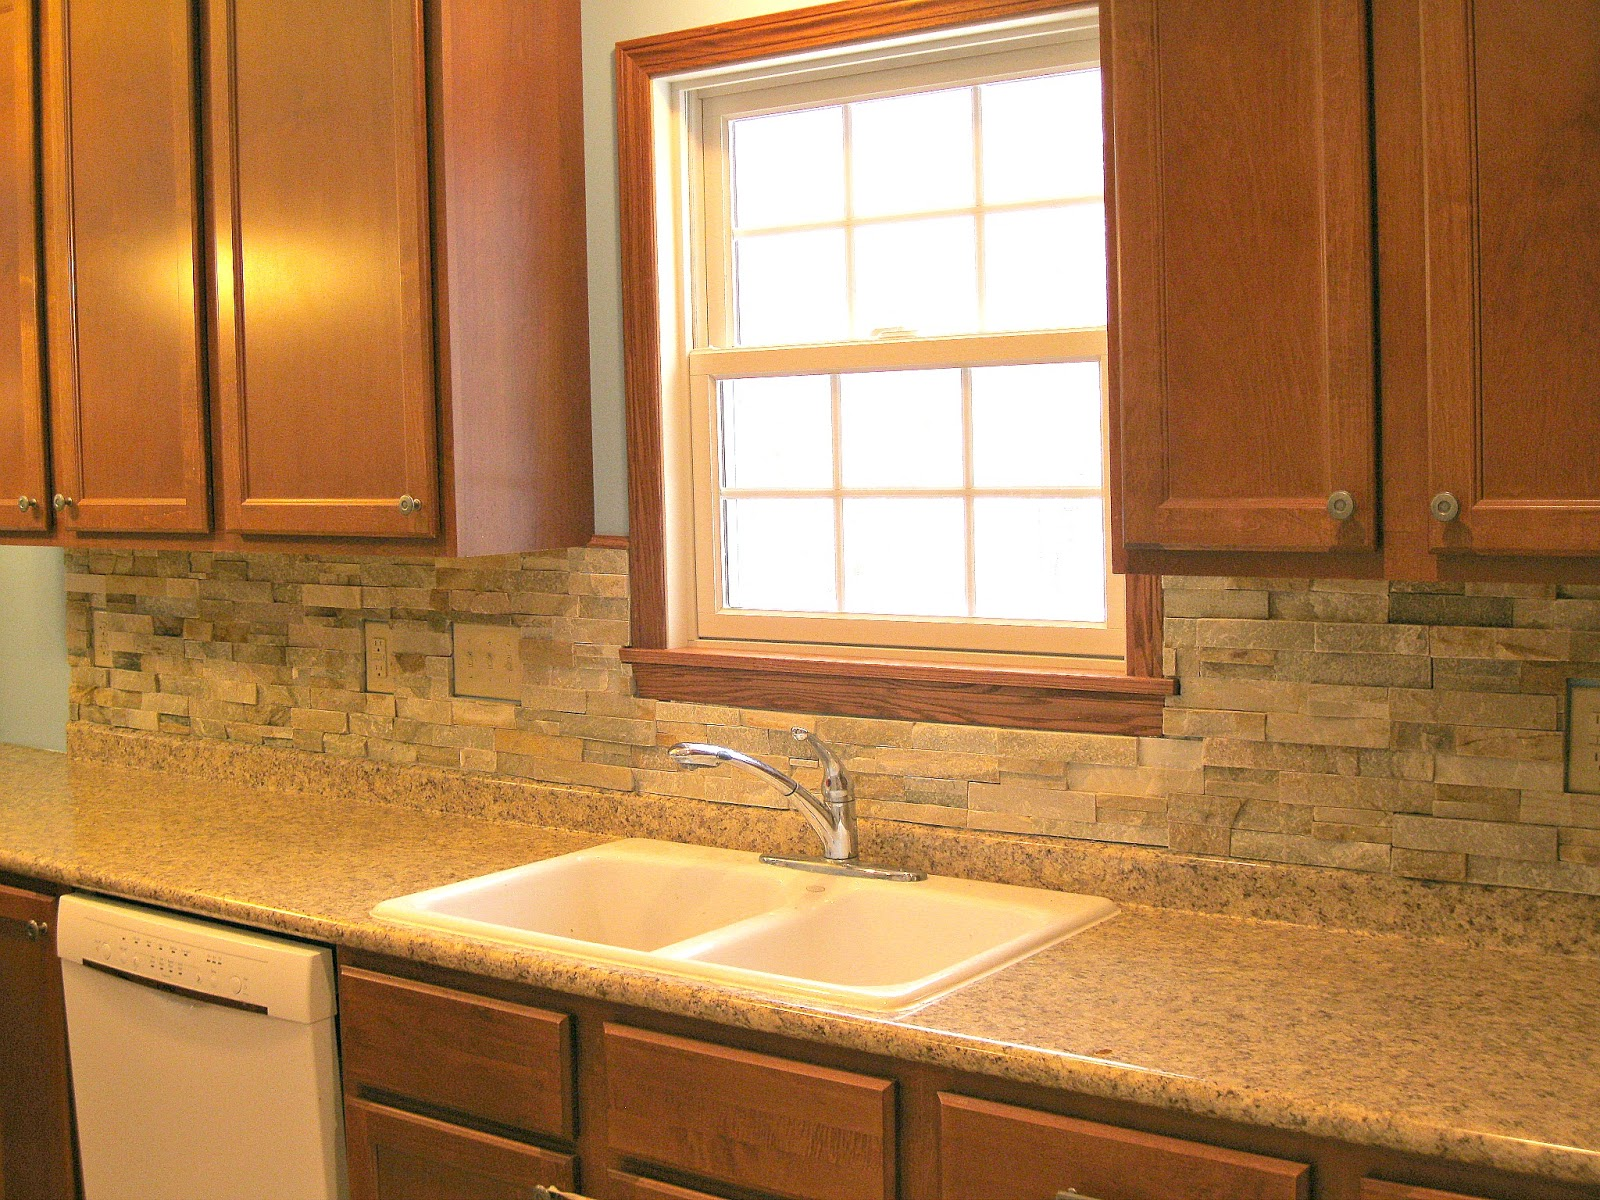 how to make a cut rock backsplash in kitchen